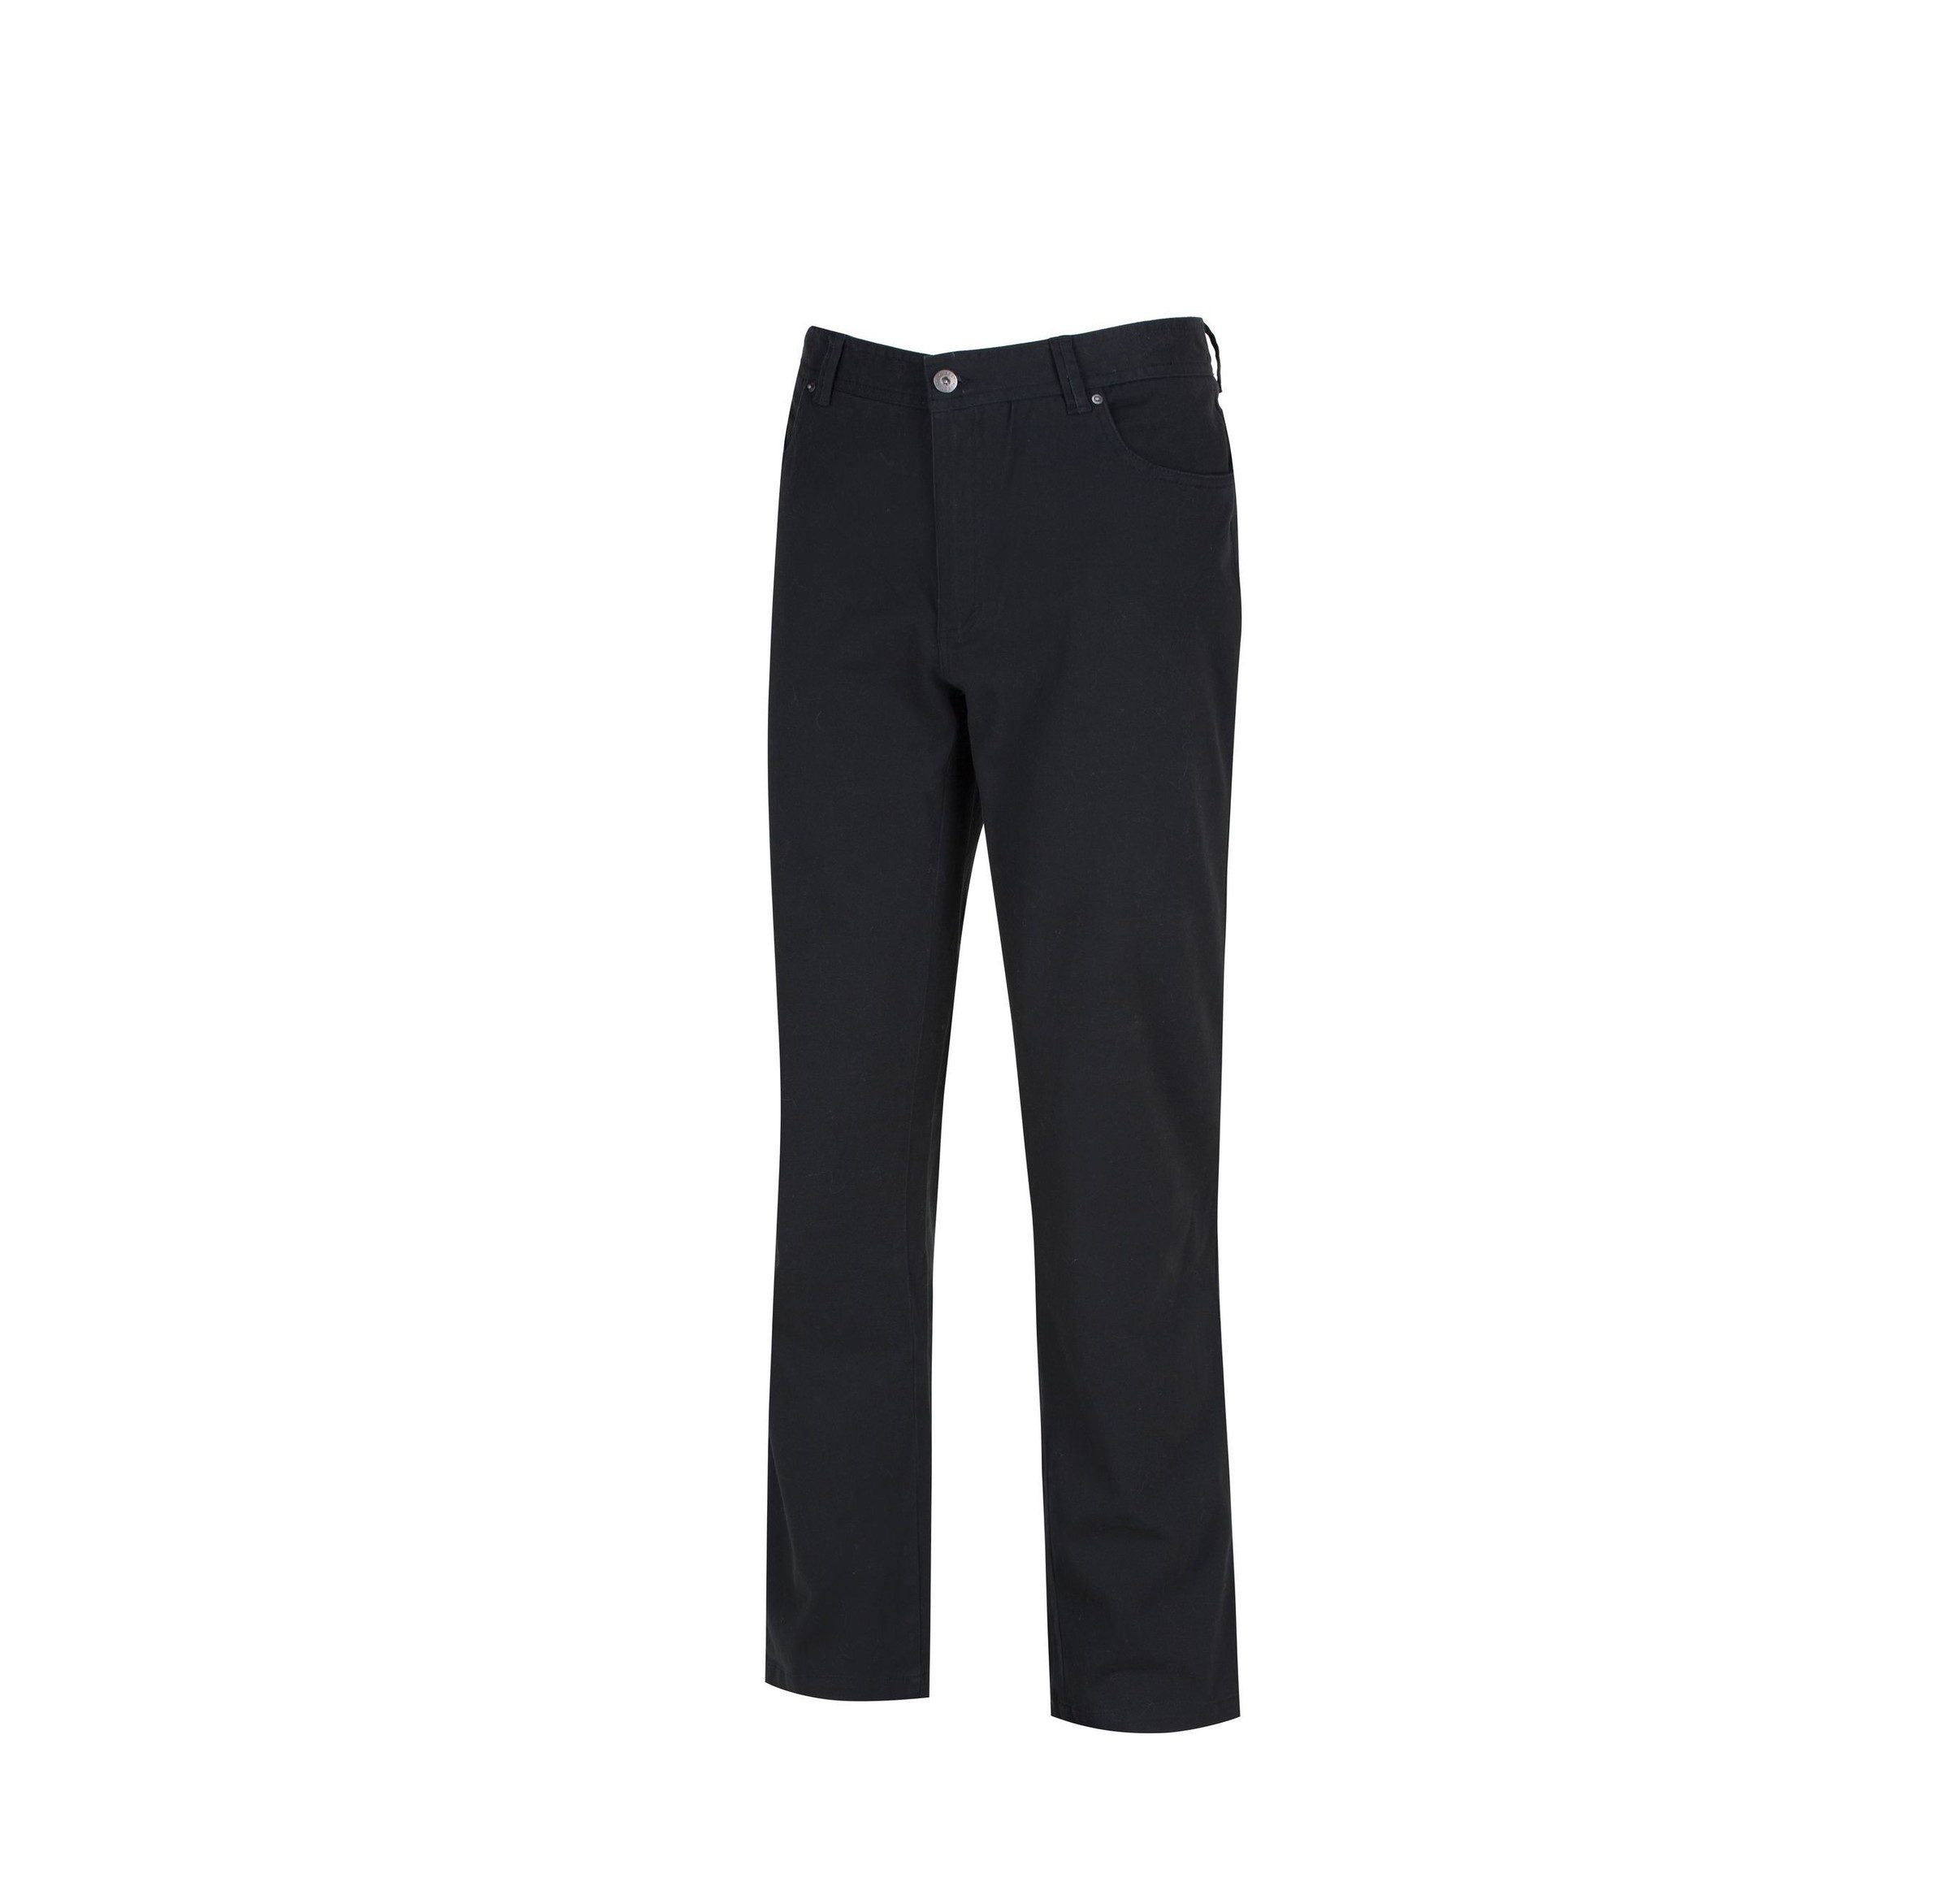 Regatta Lawry Trousers - Black